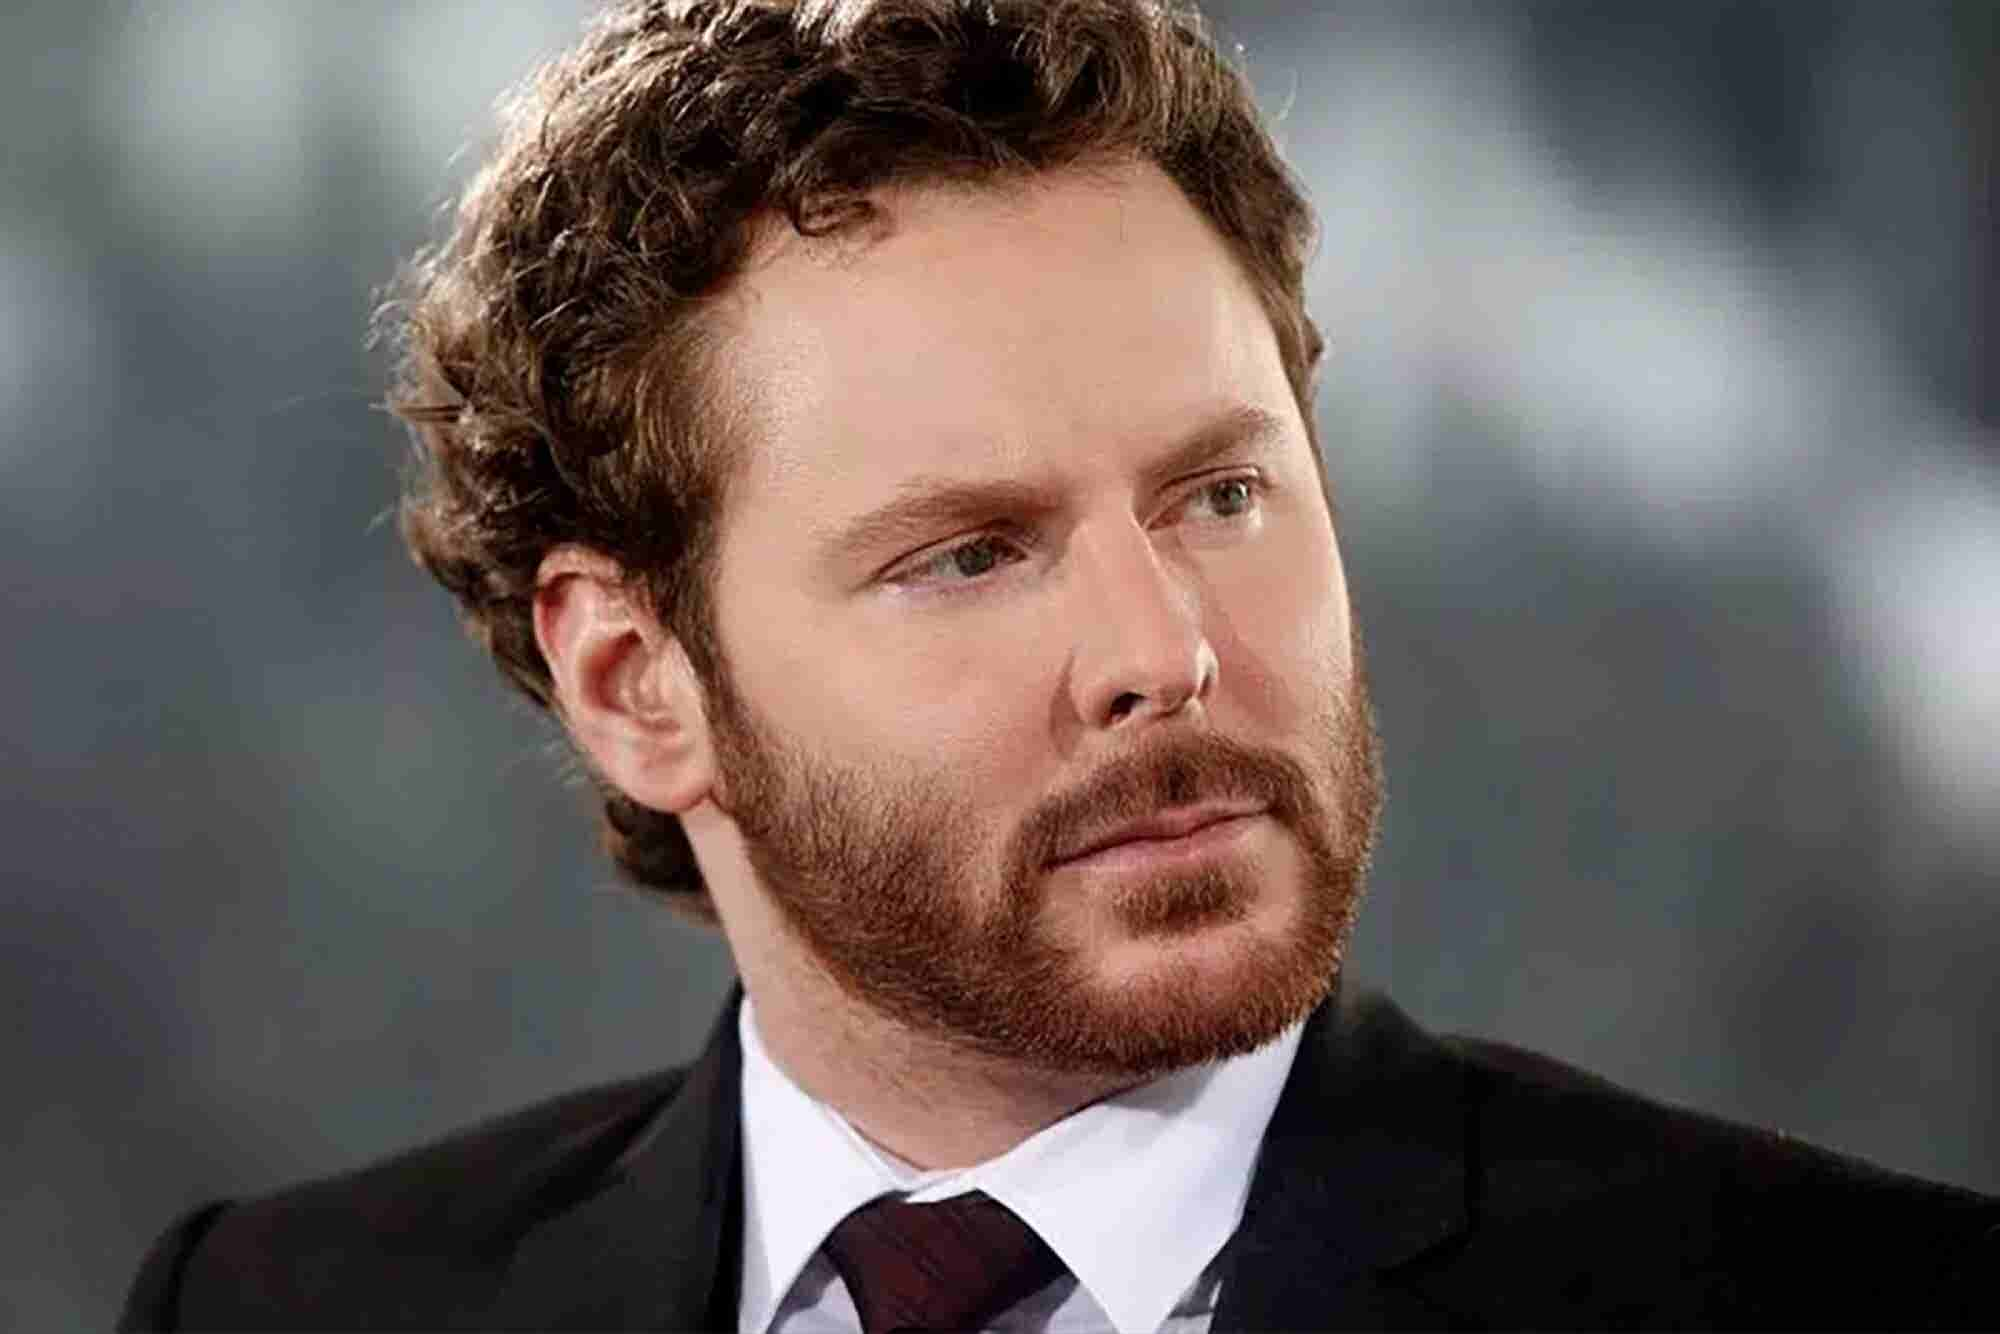 The Latest From Napster Co-Founder: A Service That Costs $50 to Watch...